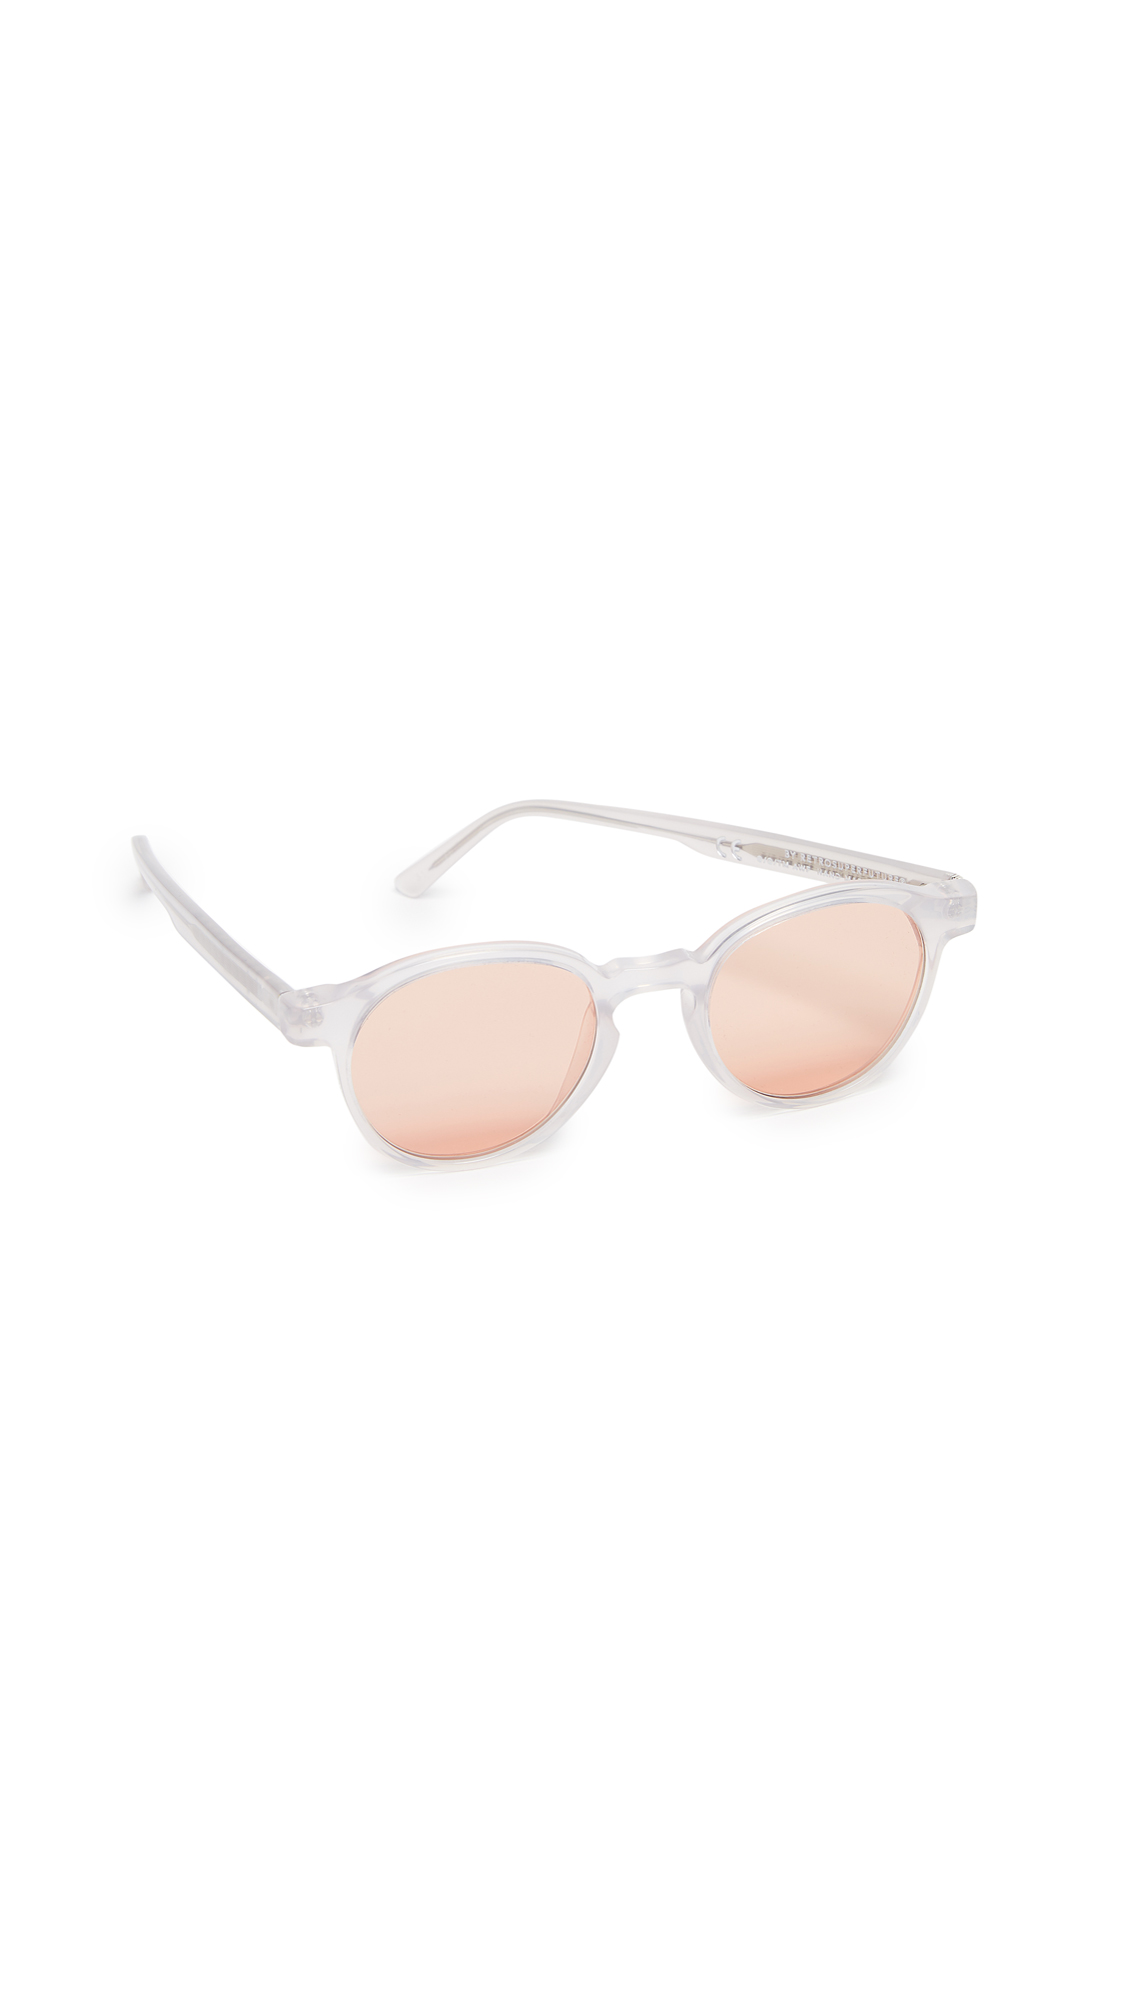 SUPER SUNGLASSES X Andy Warhol Iconic Sunglasses in Crystal Grey